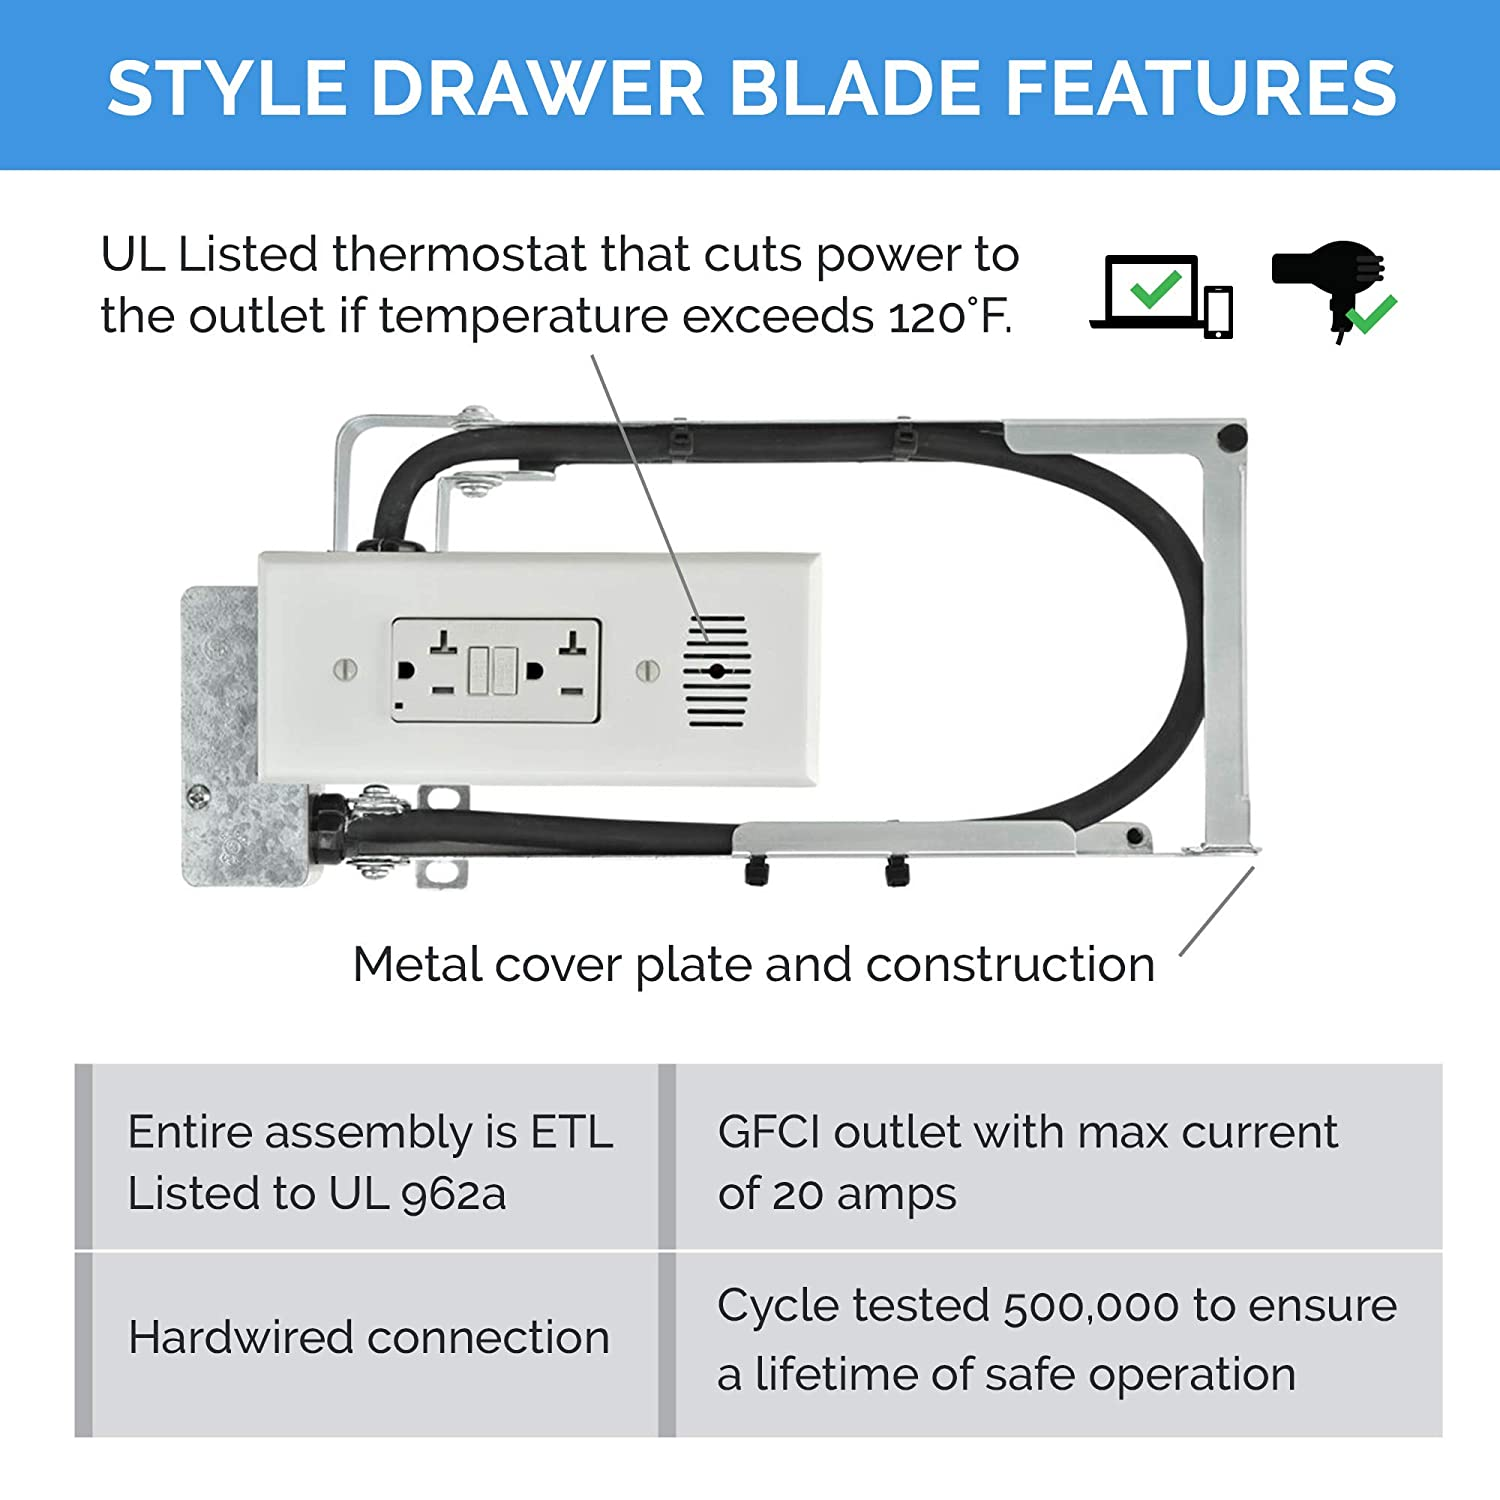 Fits Standard Cabinets In-Drawer Powering Outlet White 2 AC GFCI Outlets Style Drawer 21 Blade